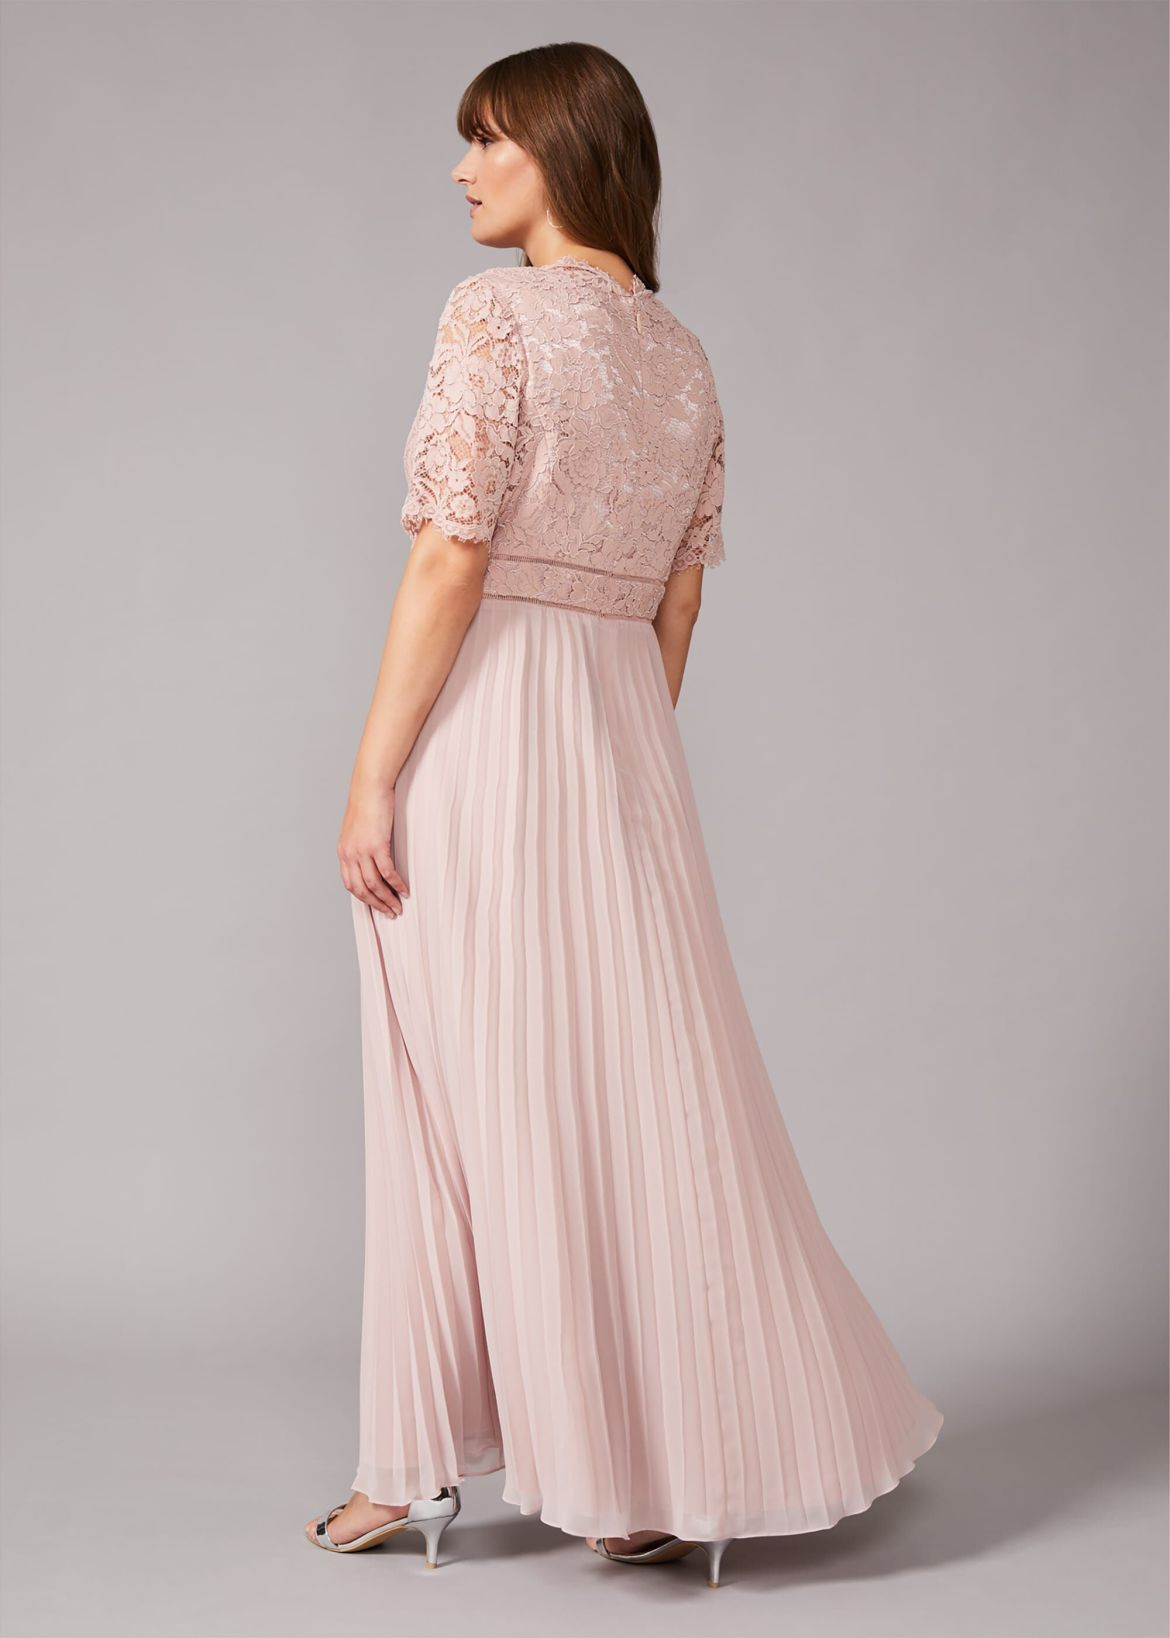 Ramona Lace Maxi Dress